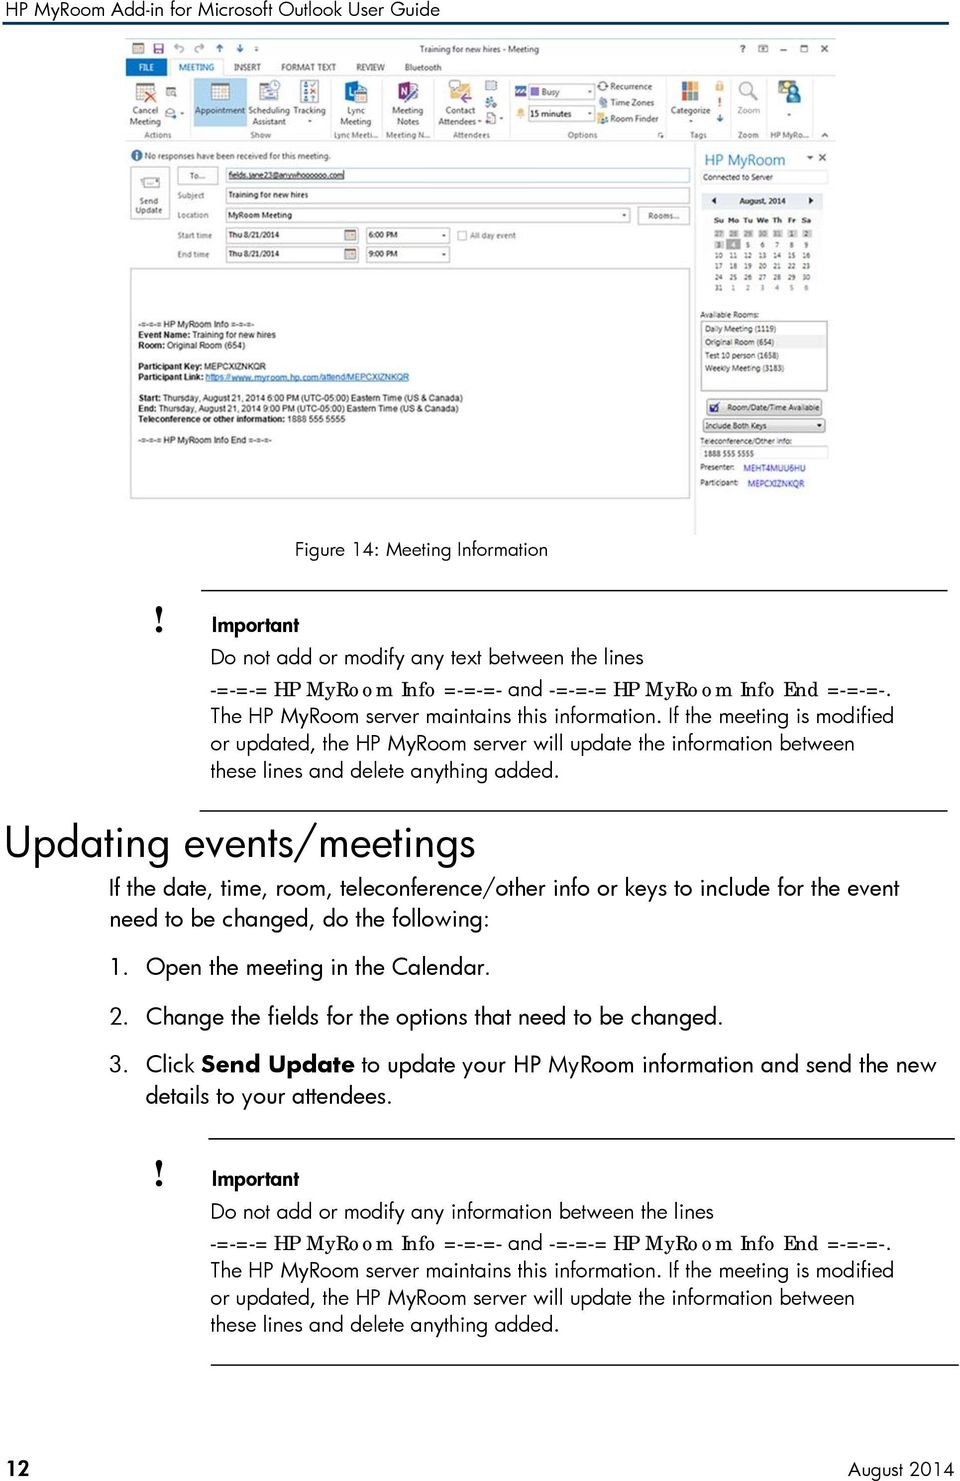 Updating events/meetings If the date, time, room, teleconference/other info or keys to include for the event need to be changed, do the following: 1. Open the meeting in the Calendar. 2.